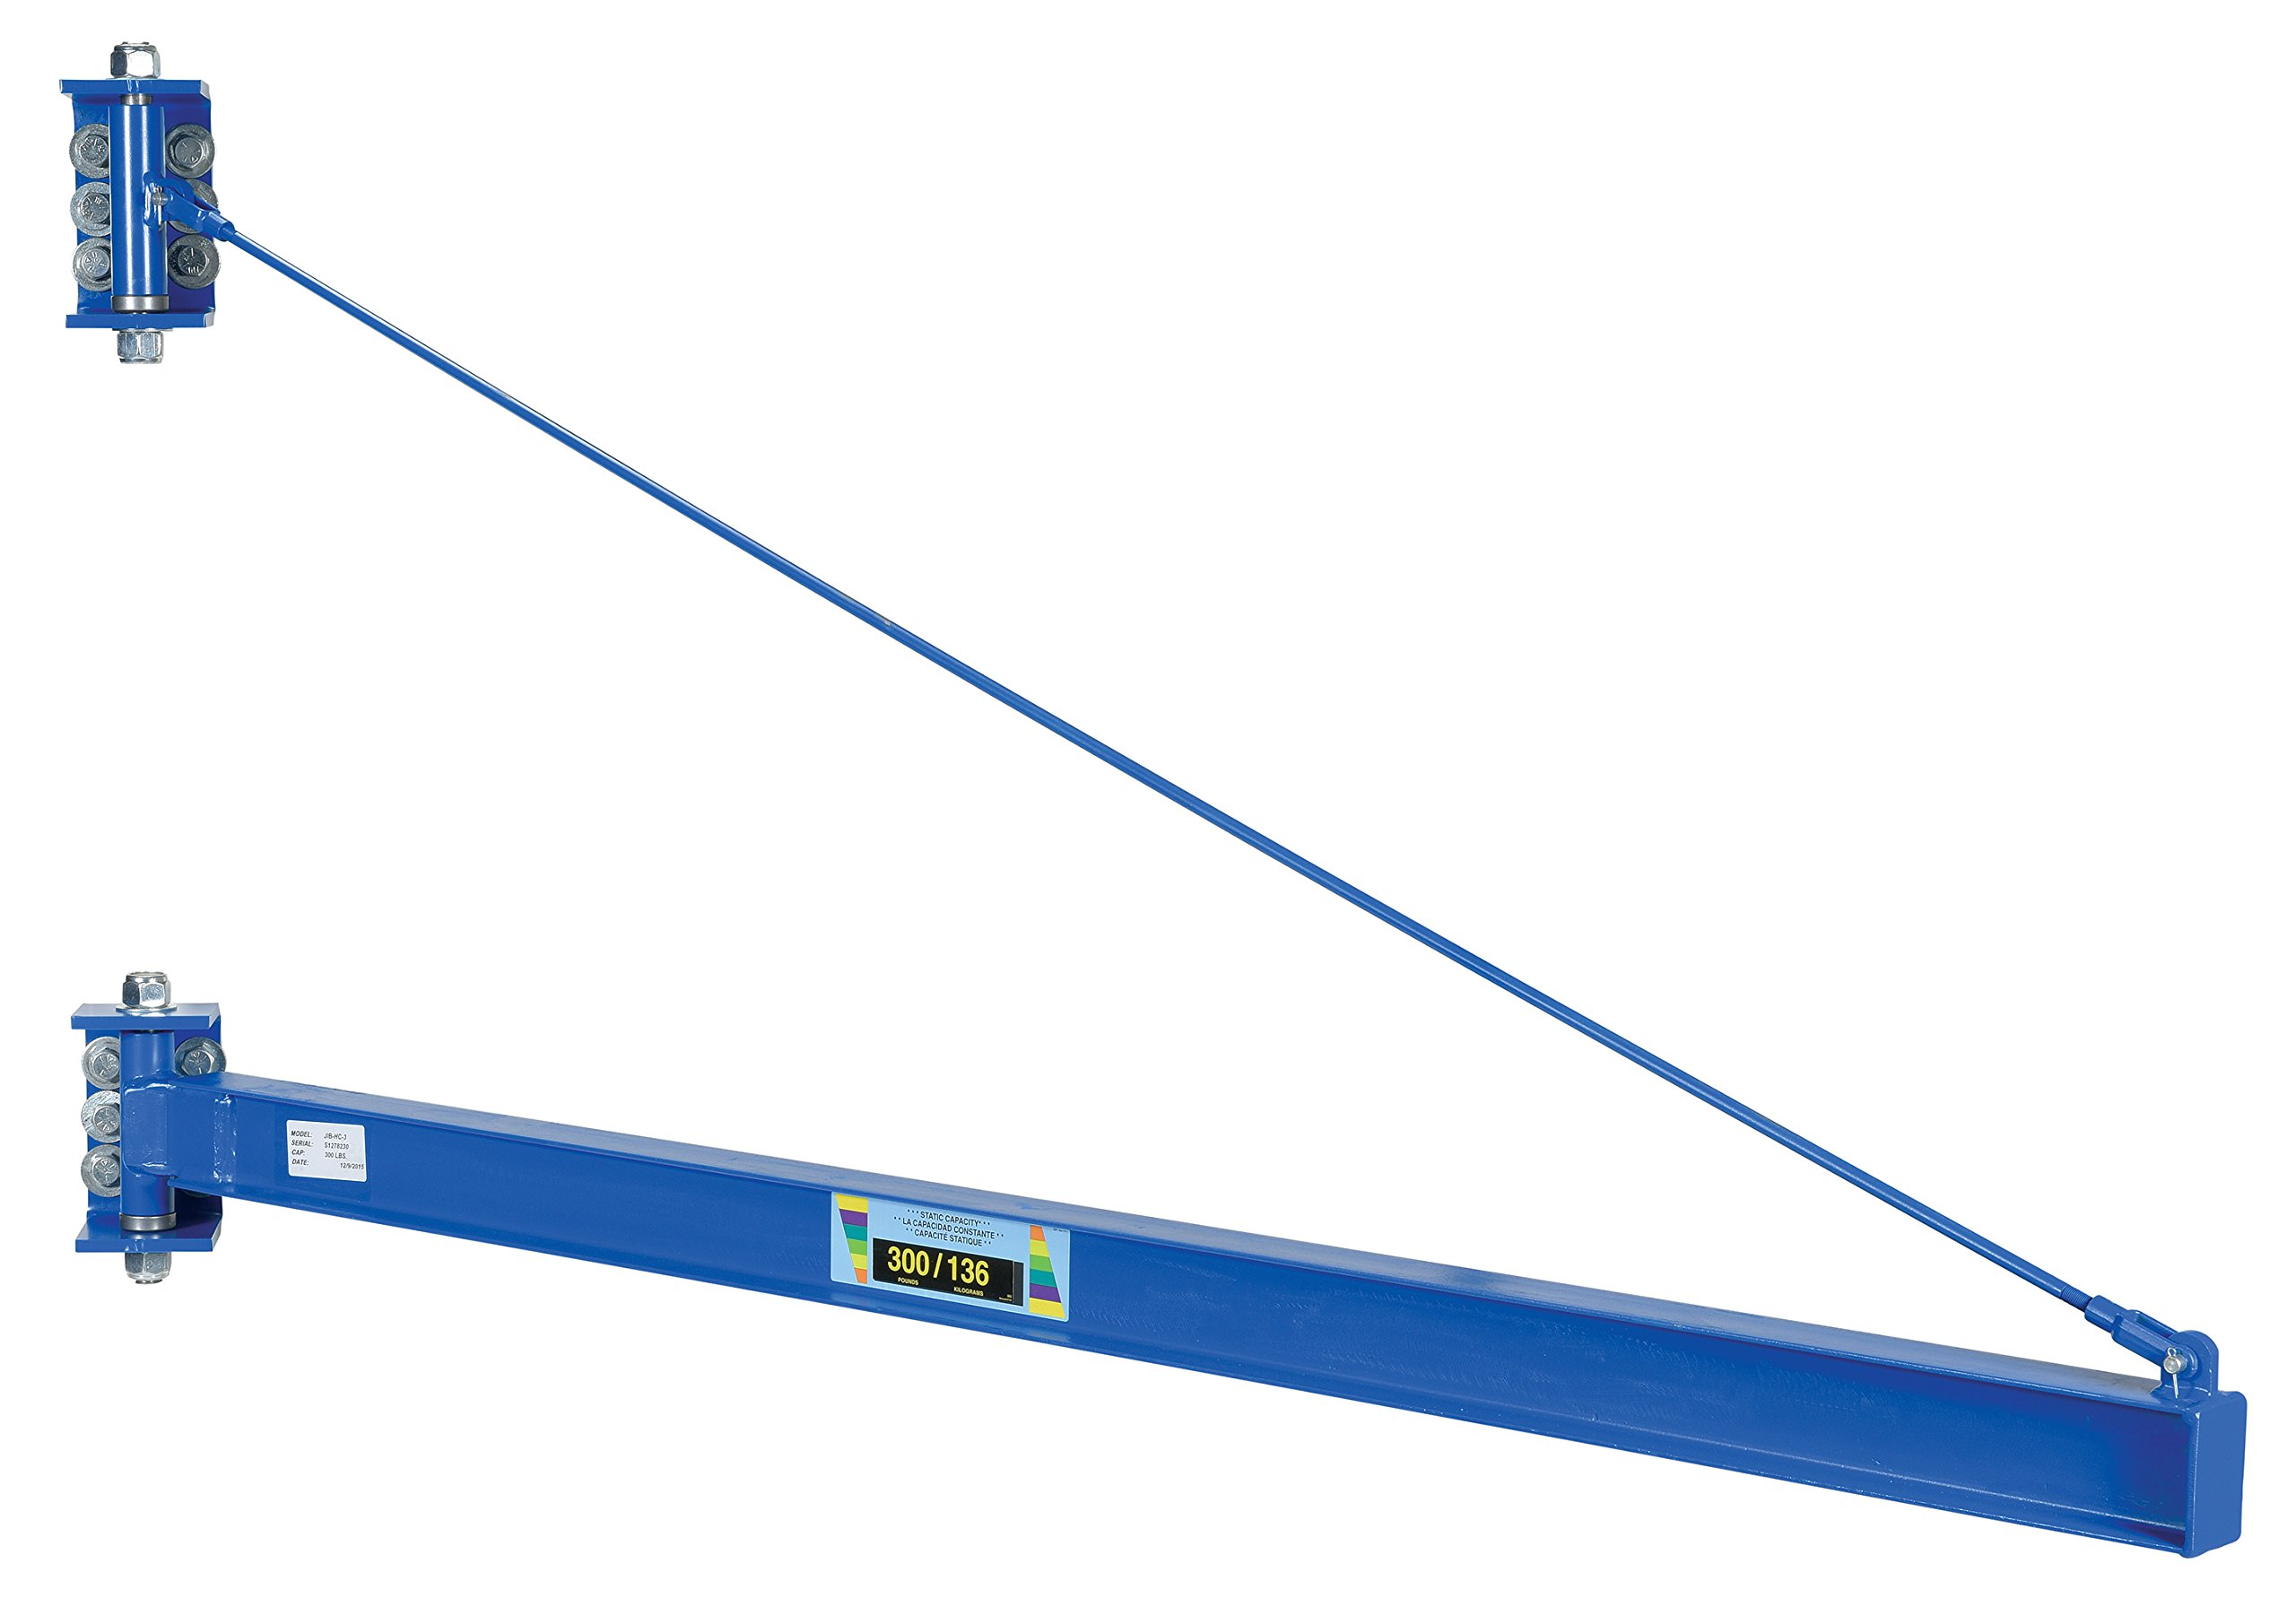 Vestil JIB-HC-3 Manual Wall Mount Steel Jib Crane, High Clearance 300 lb Capacity, 180 degree Rotation, Tie Bar Length 82-1/4'', I-Beam 2-11/16'' Flange x 4'' Height, Overall I-Beam Length 86'', Usable I-Beam Length 79-3/4''